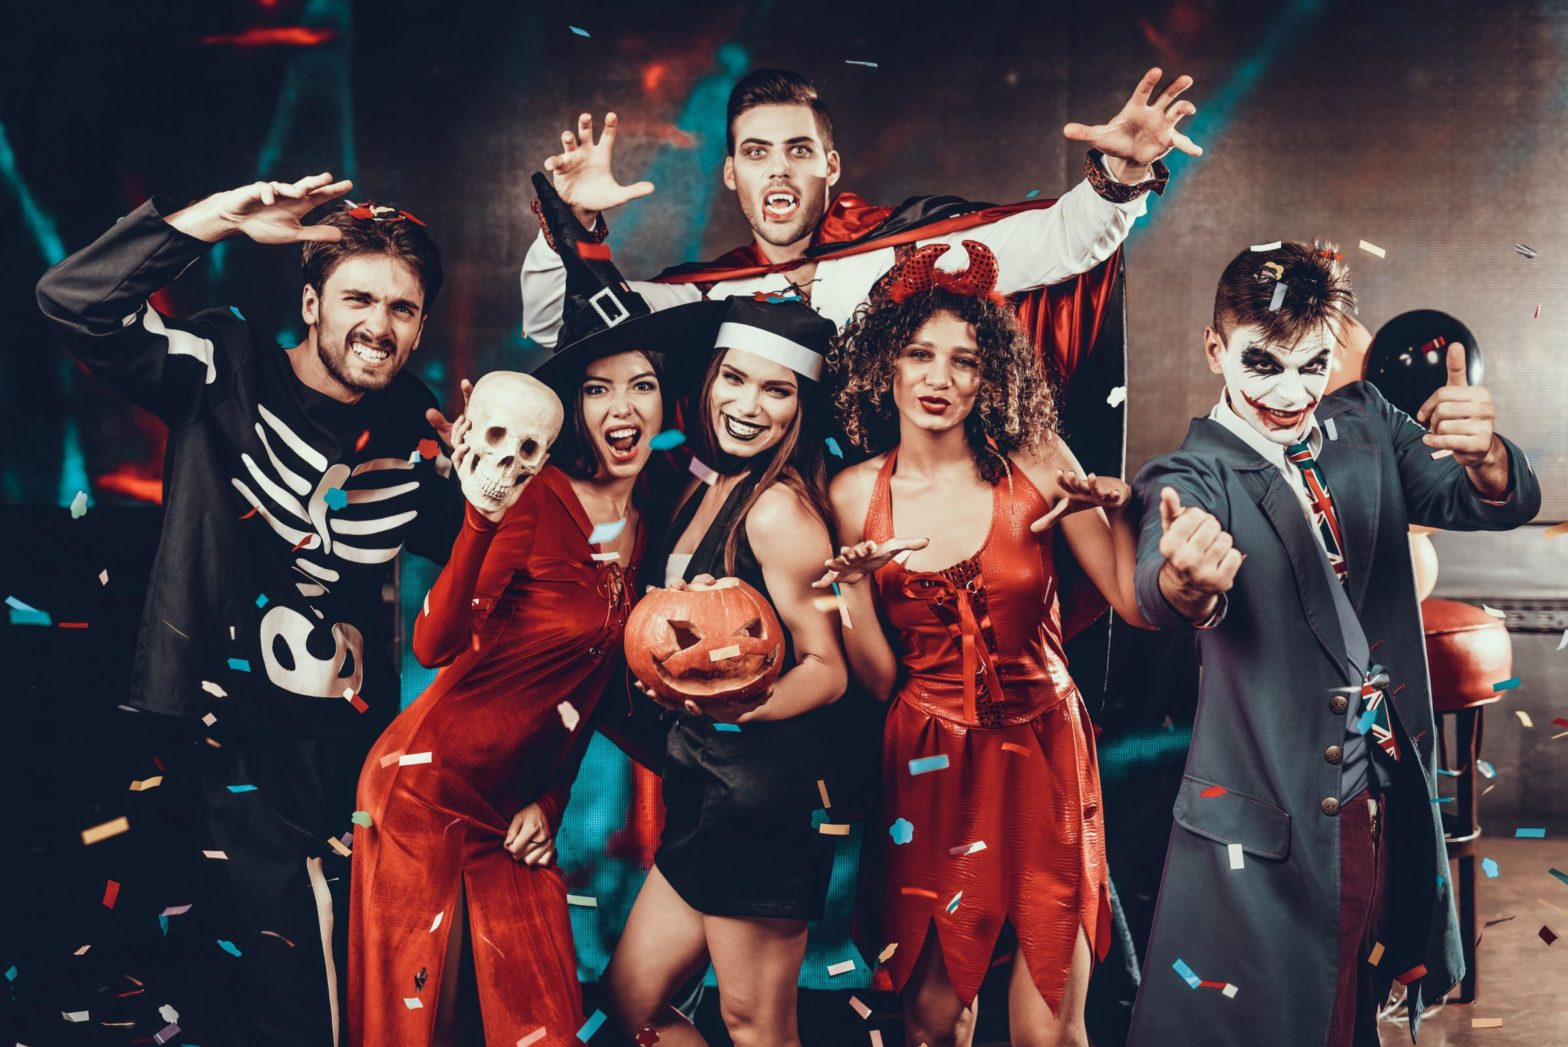 Classy and Elegant Halloween Party Ideas